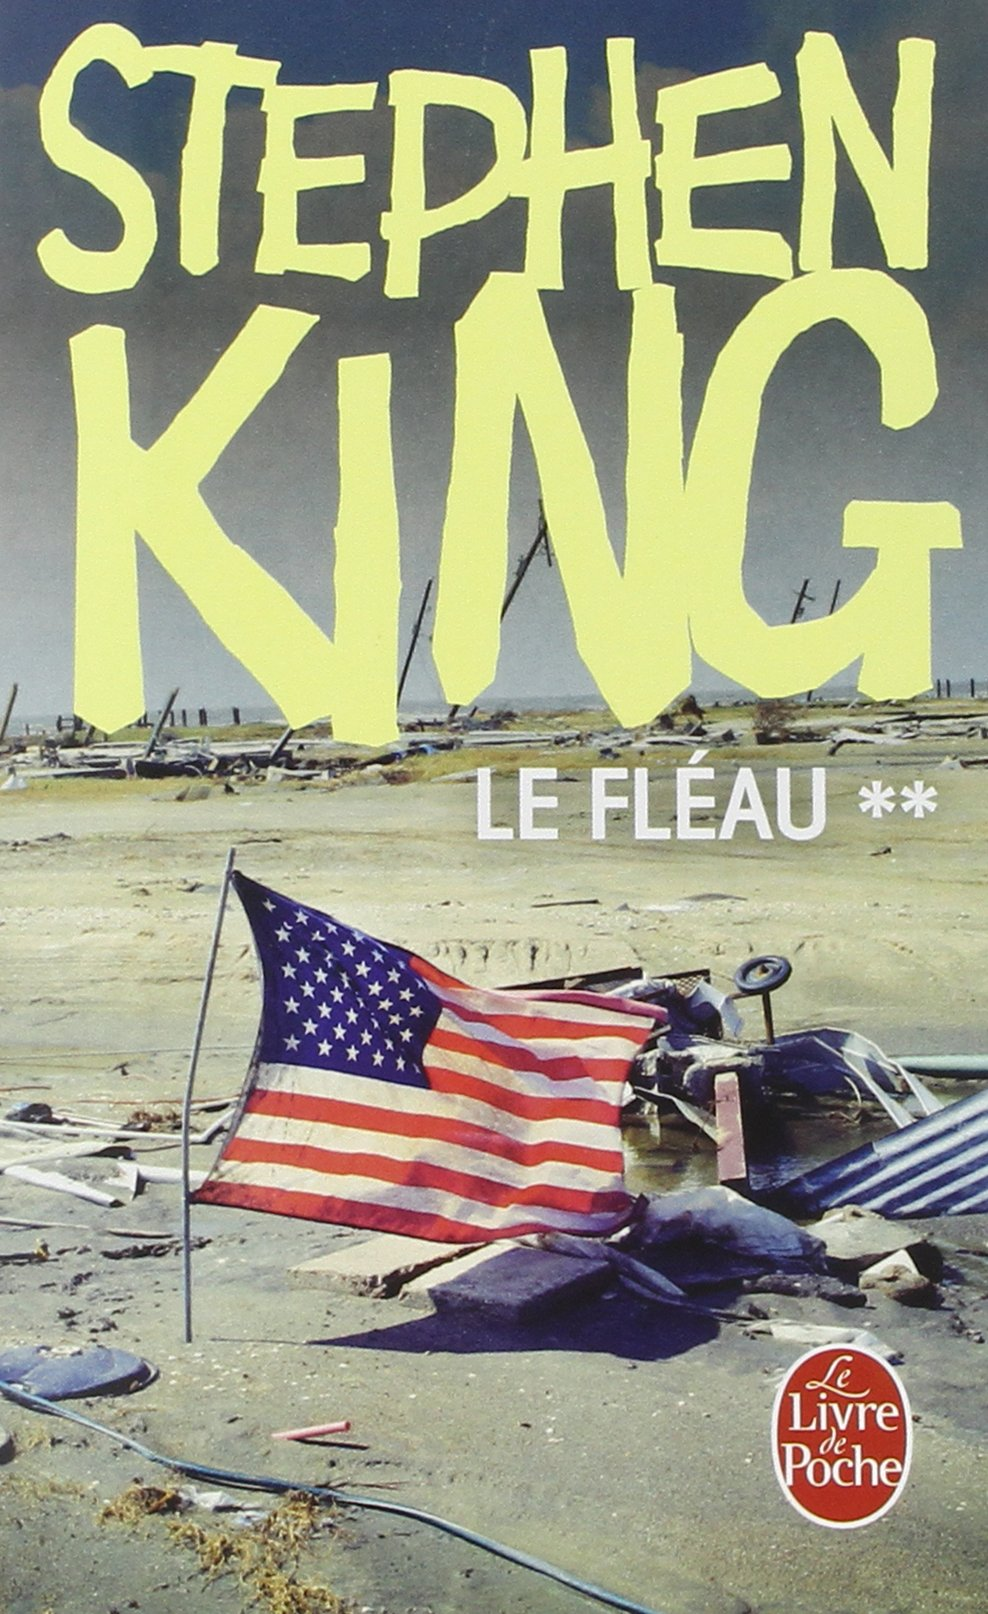 Le Fléau, tome 2 Poche – 4 juin 2003 Stephen King Le Livre de Poche 2253151424 FICTION / Fantasy / General